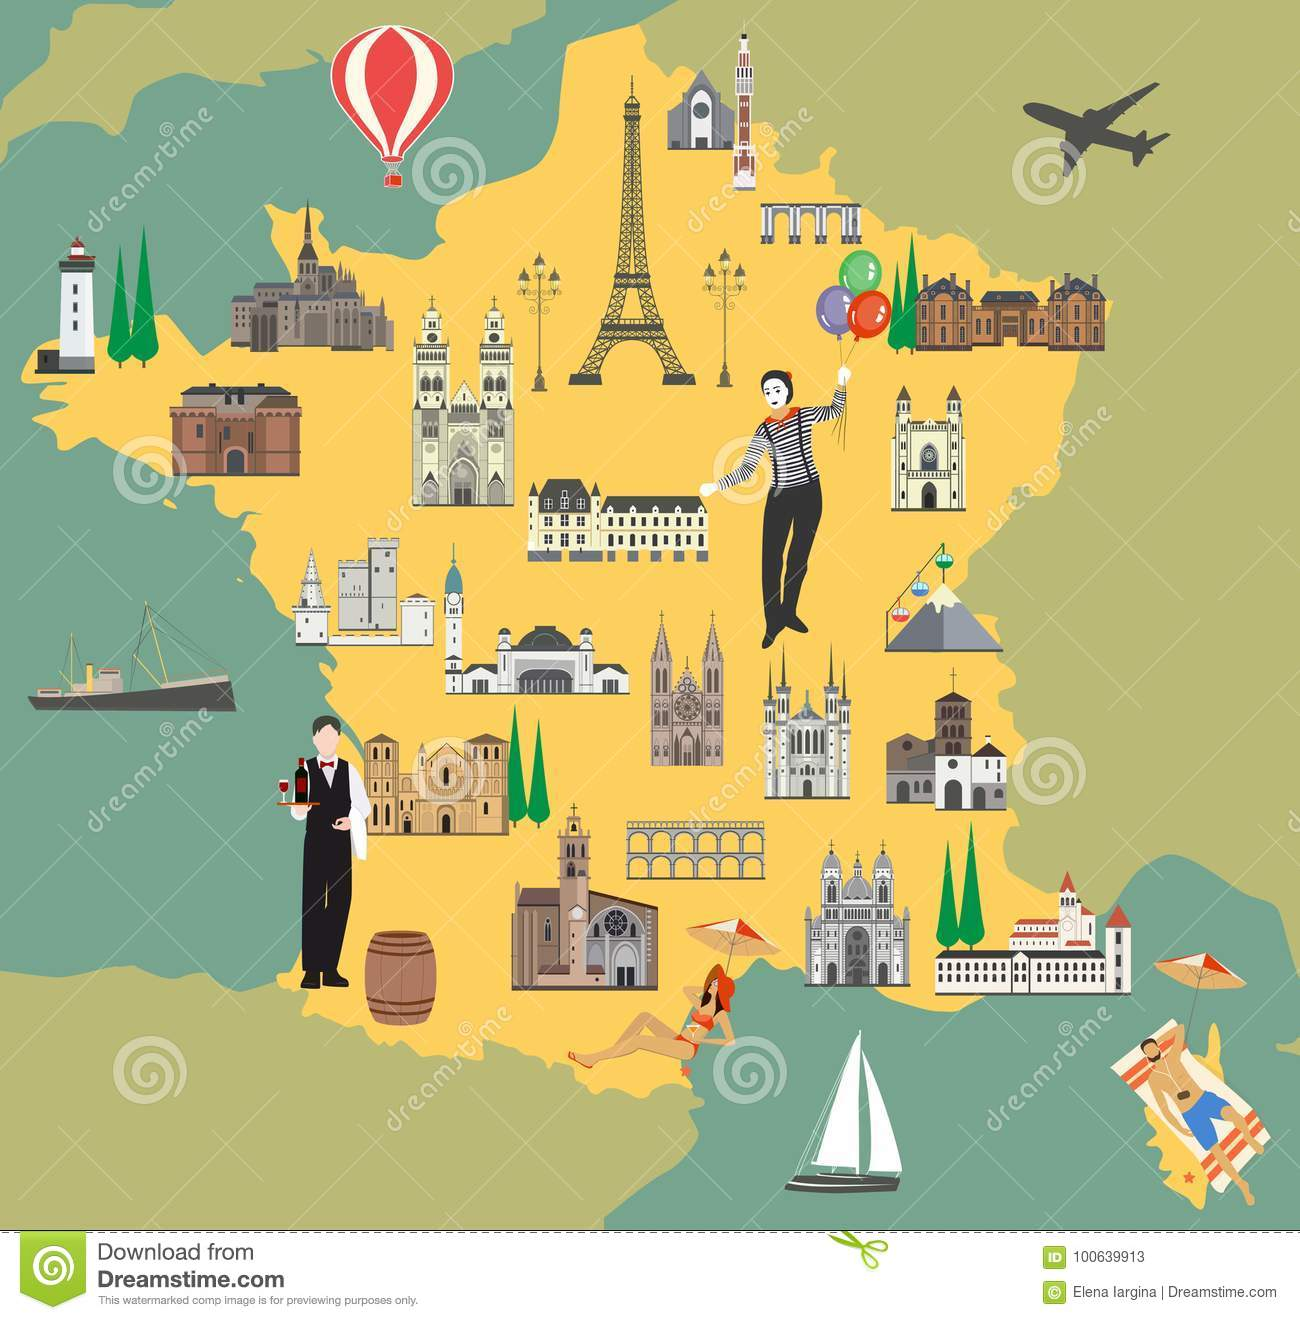 Travel Map Of France.France Travel Map With Sights Flat Style Vector Illustration Stock